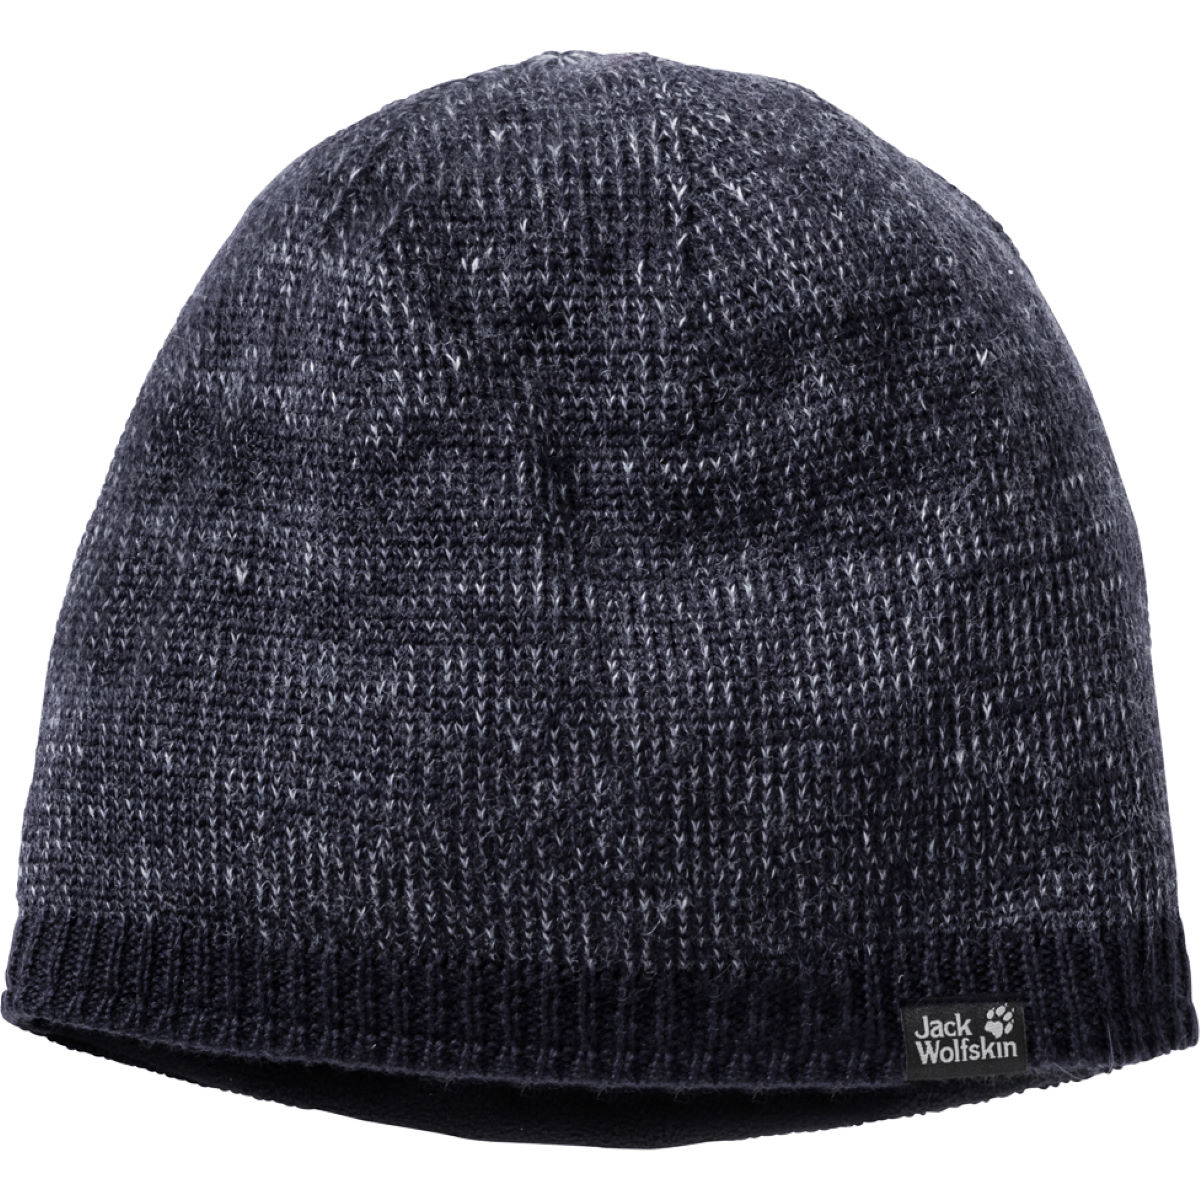 Jack wolfskin stormlock foggy cap hats night blue aw17 1906241 1010one size